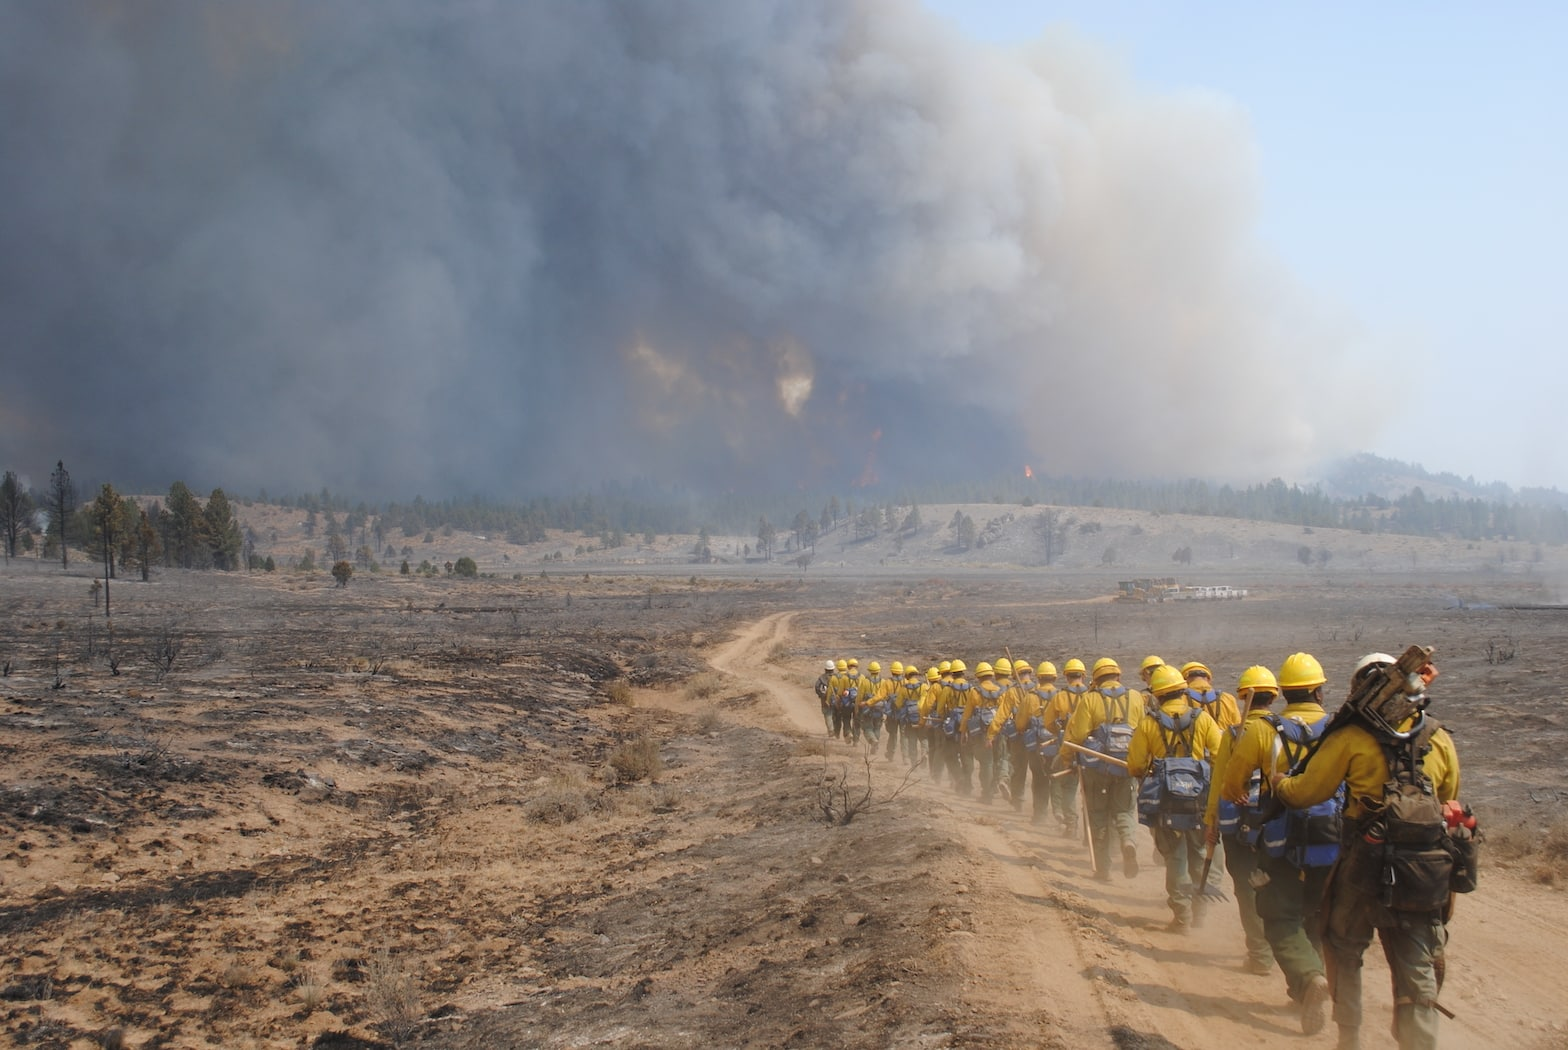 U.S. Army Soldiers from the 2-3 Infantry Battalion walk in a line while deployed in support of the Department of Defense wildland firefighting response operations on the Dixie Fire in Plumas National Forest, California, Sept. 4, 2021